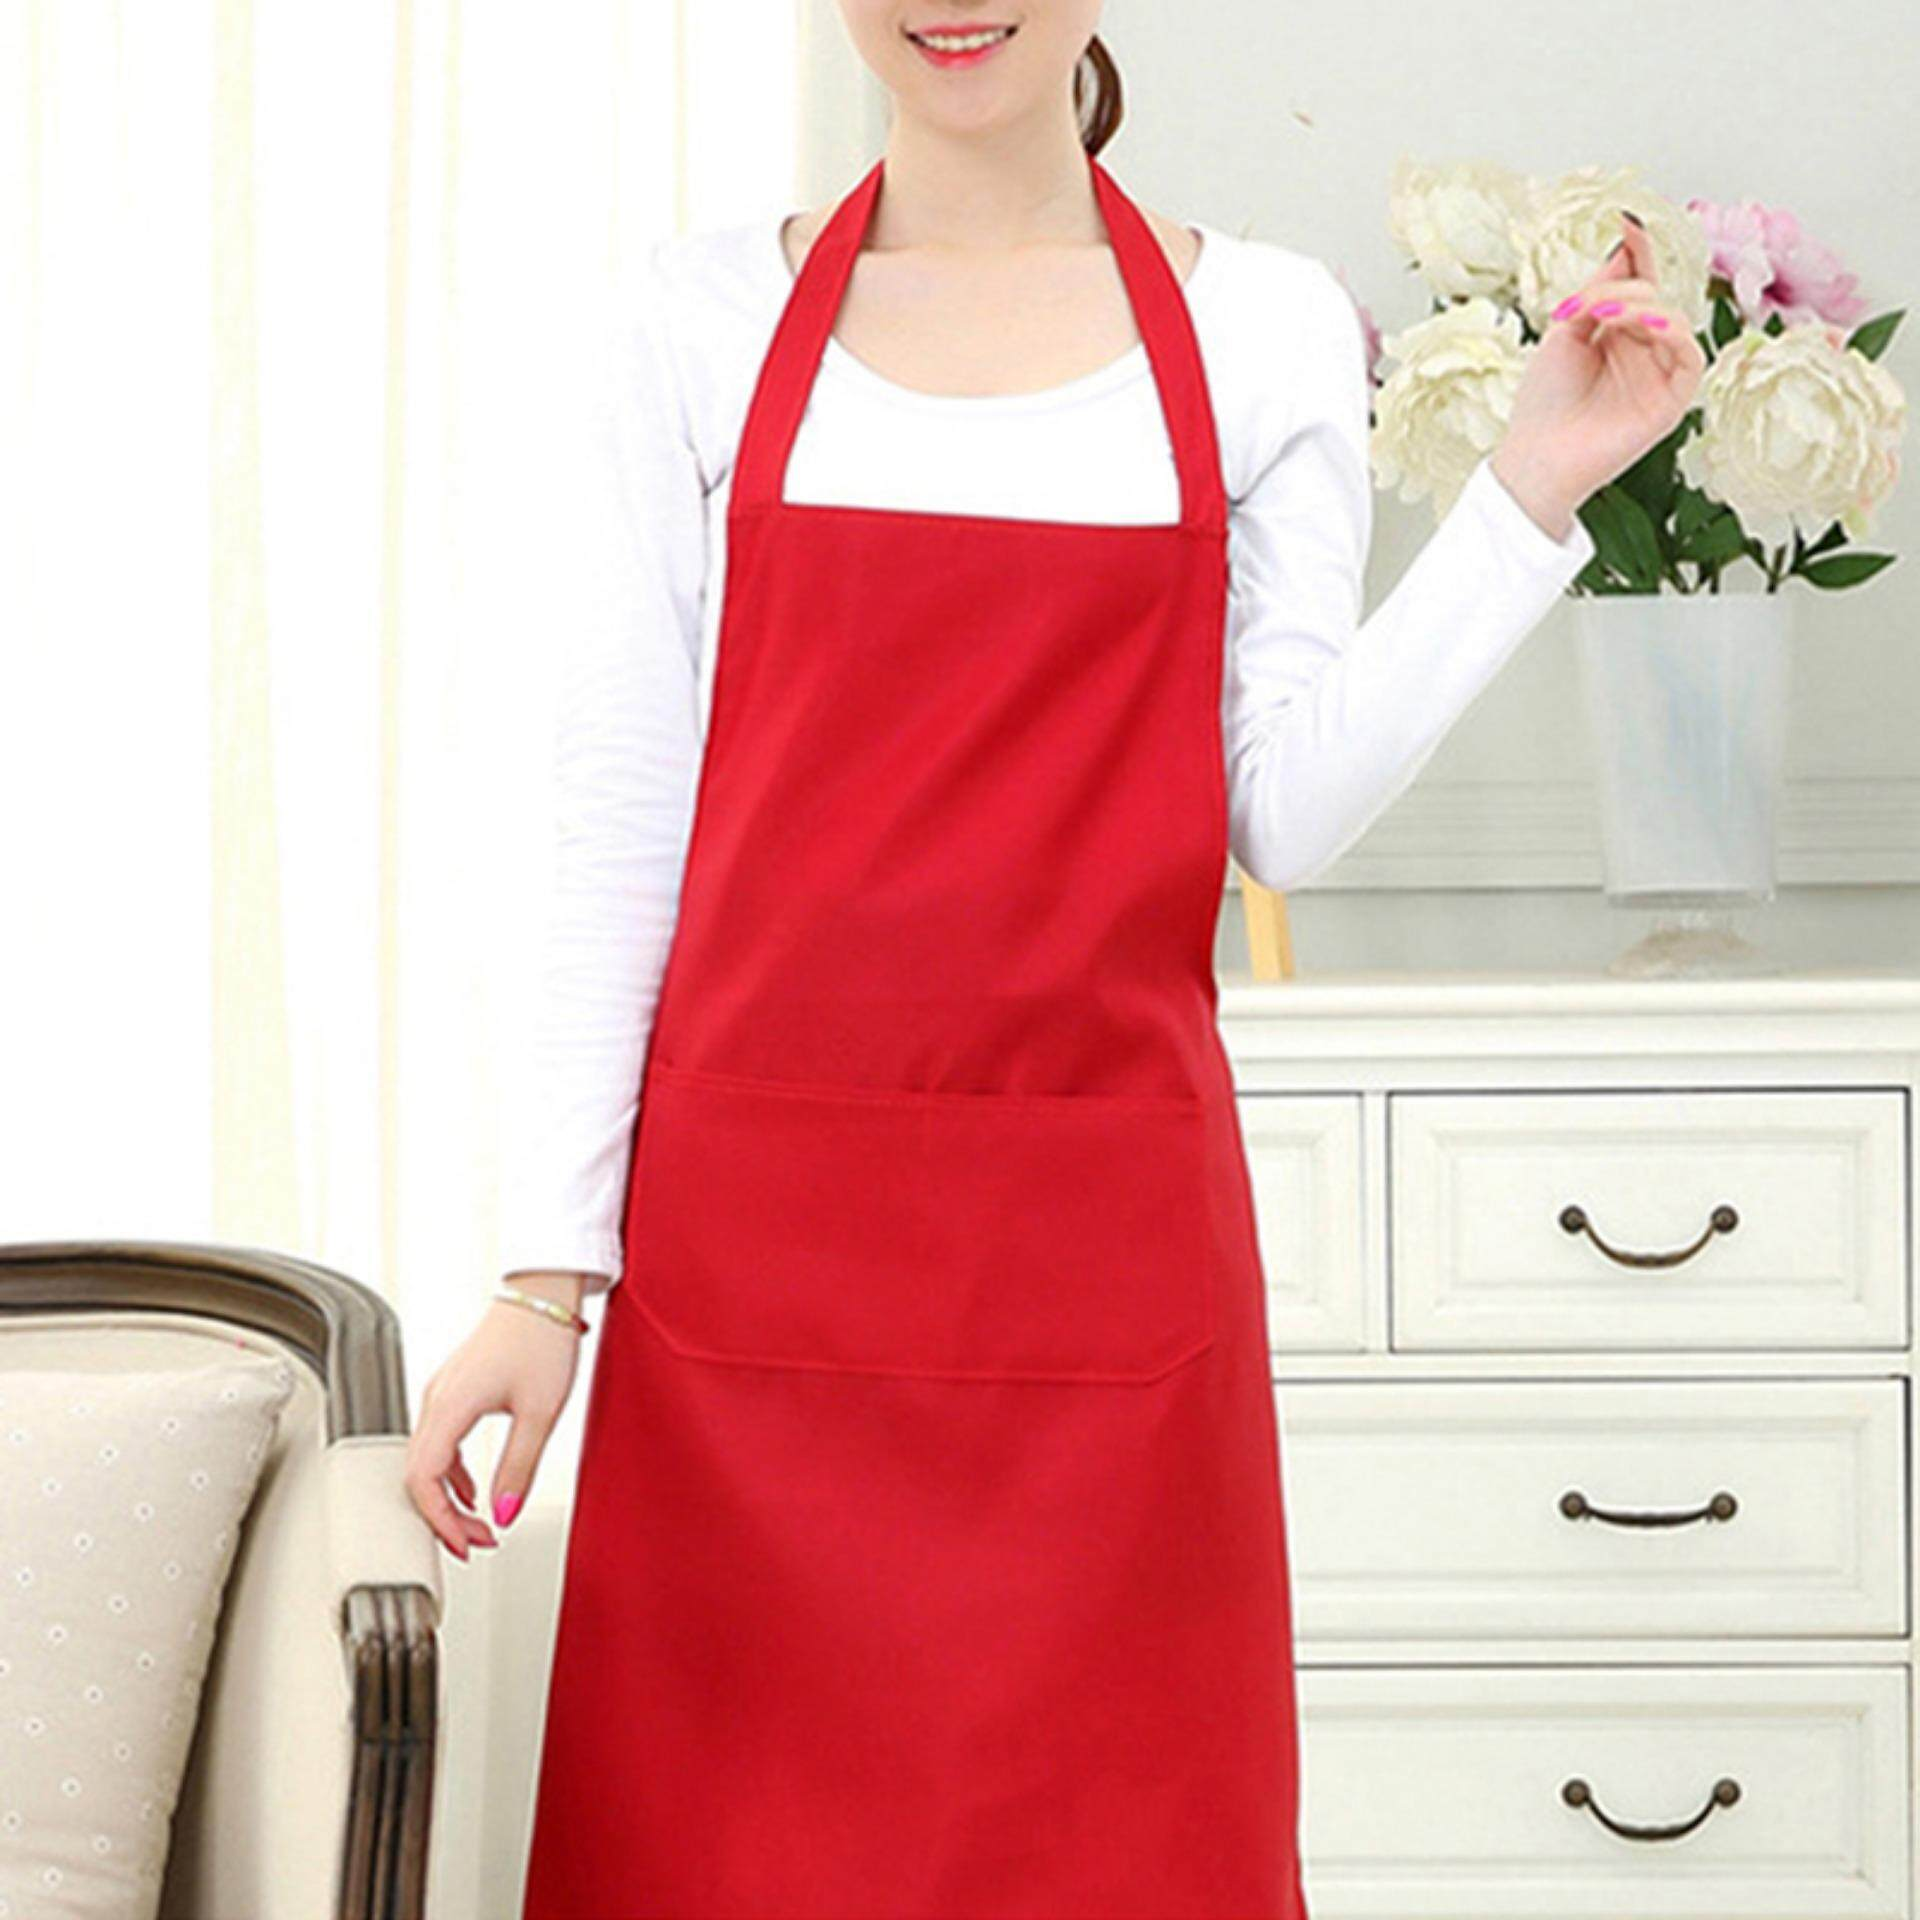 59857d59e Home Aprons - Buy Home Aprons at Best Price in Malaysia | www.lazada ...